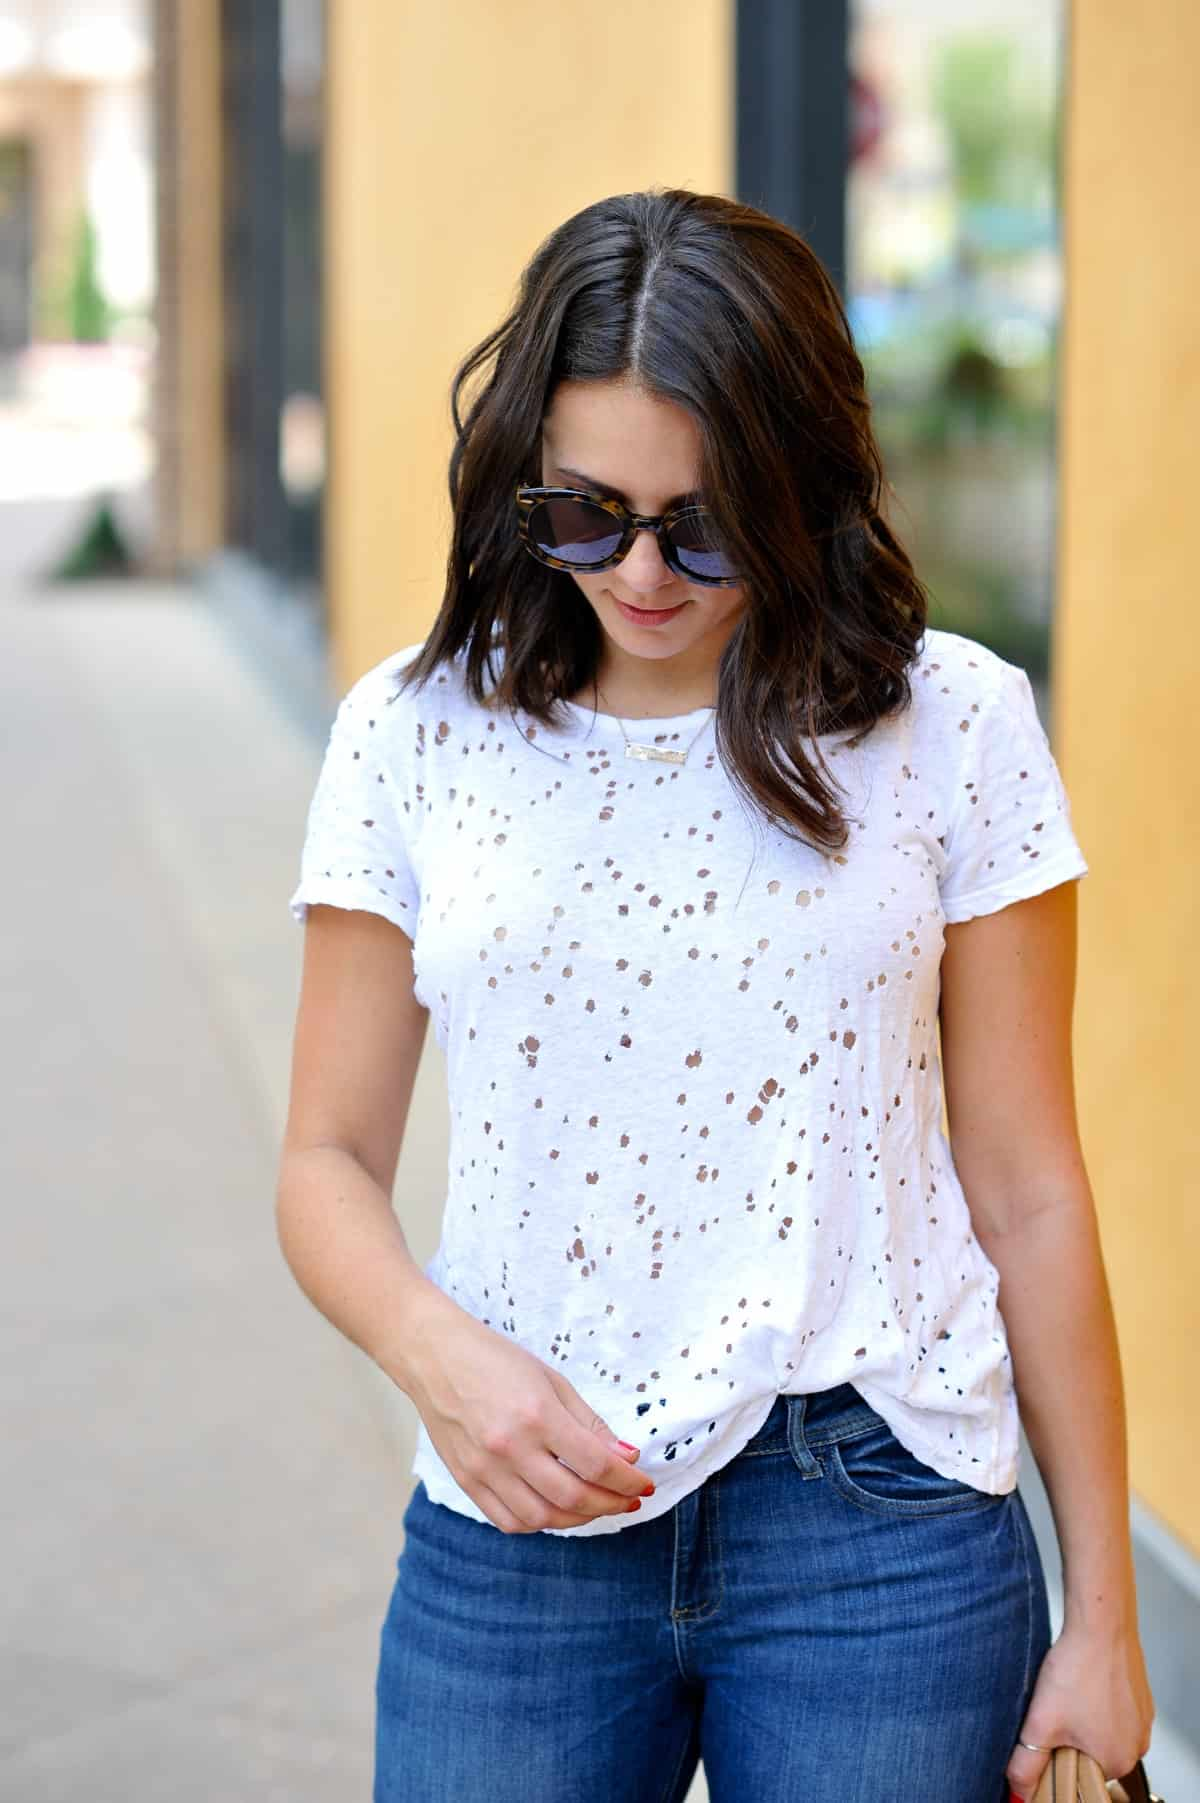 Casual summer outfit ideas - My Style Vita @mystylevita - 7